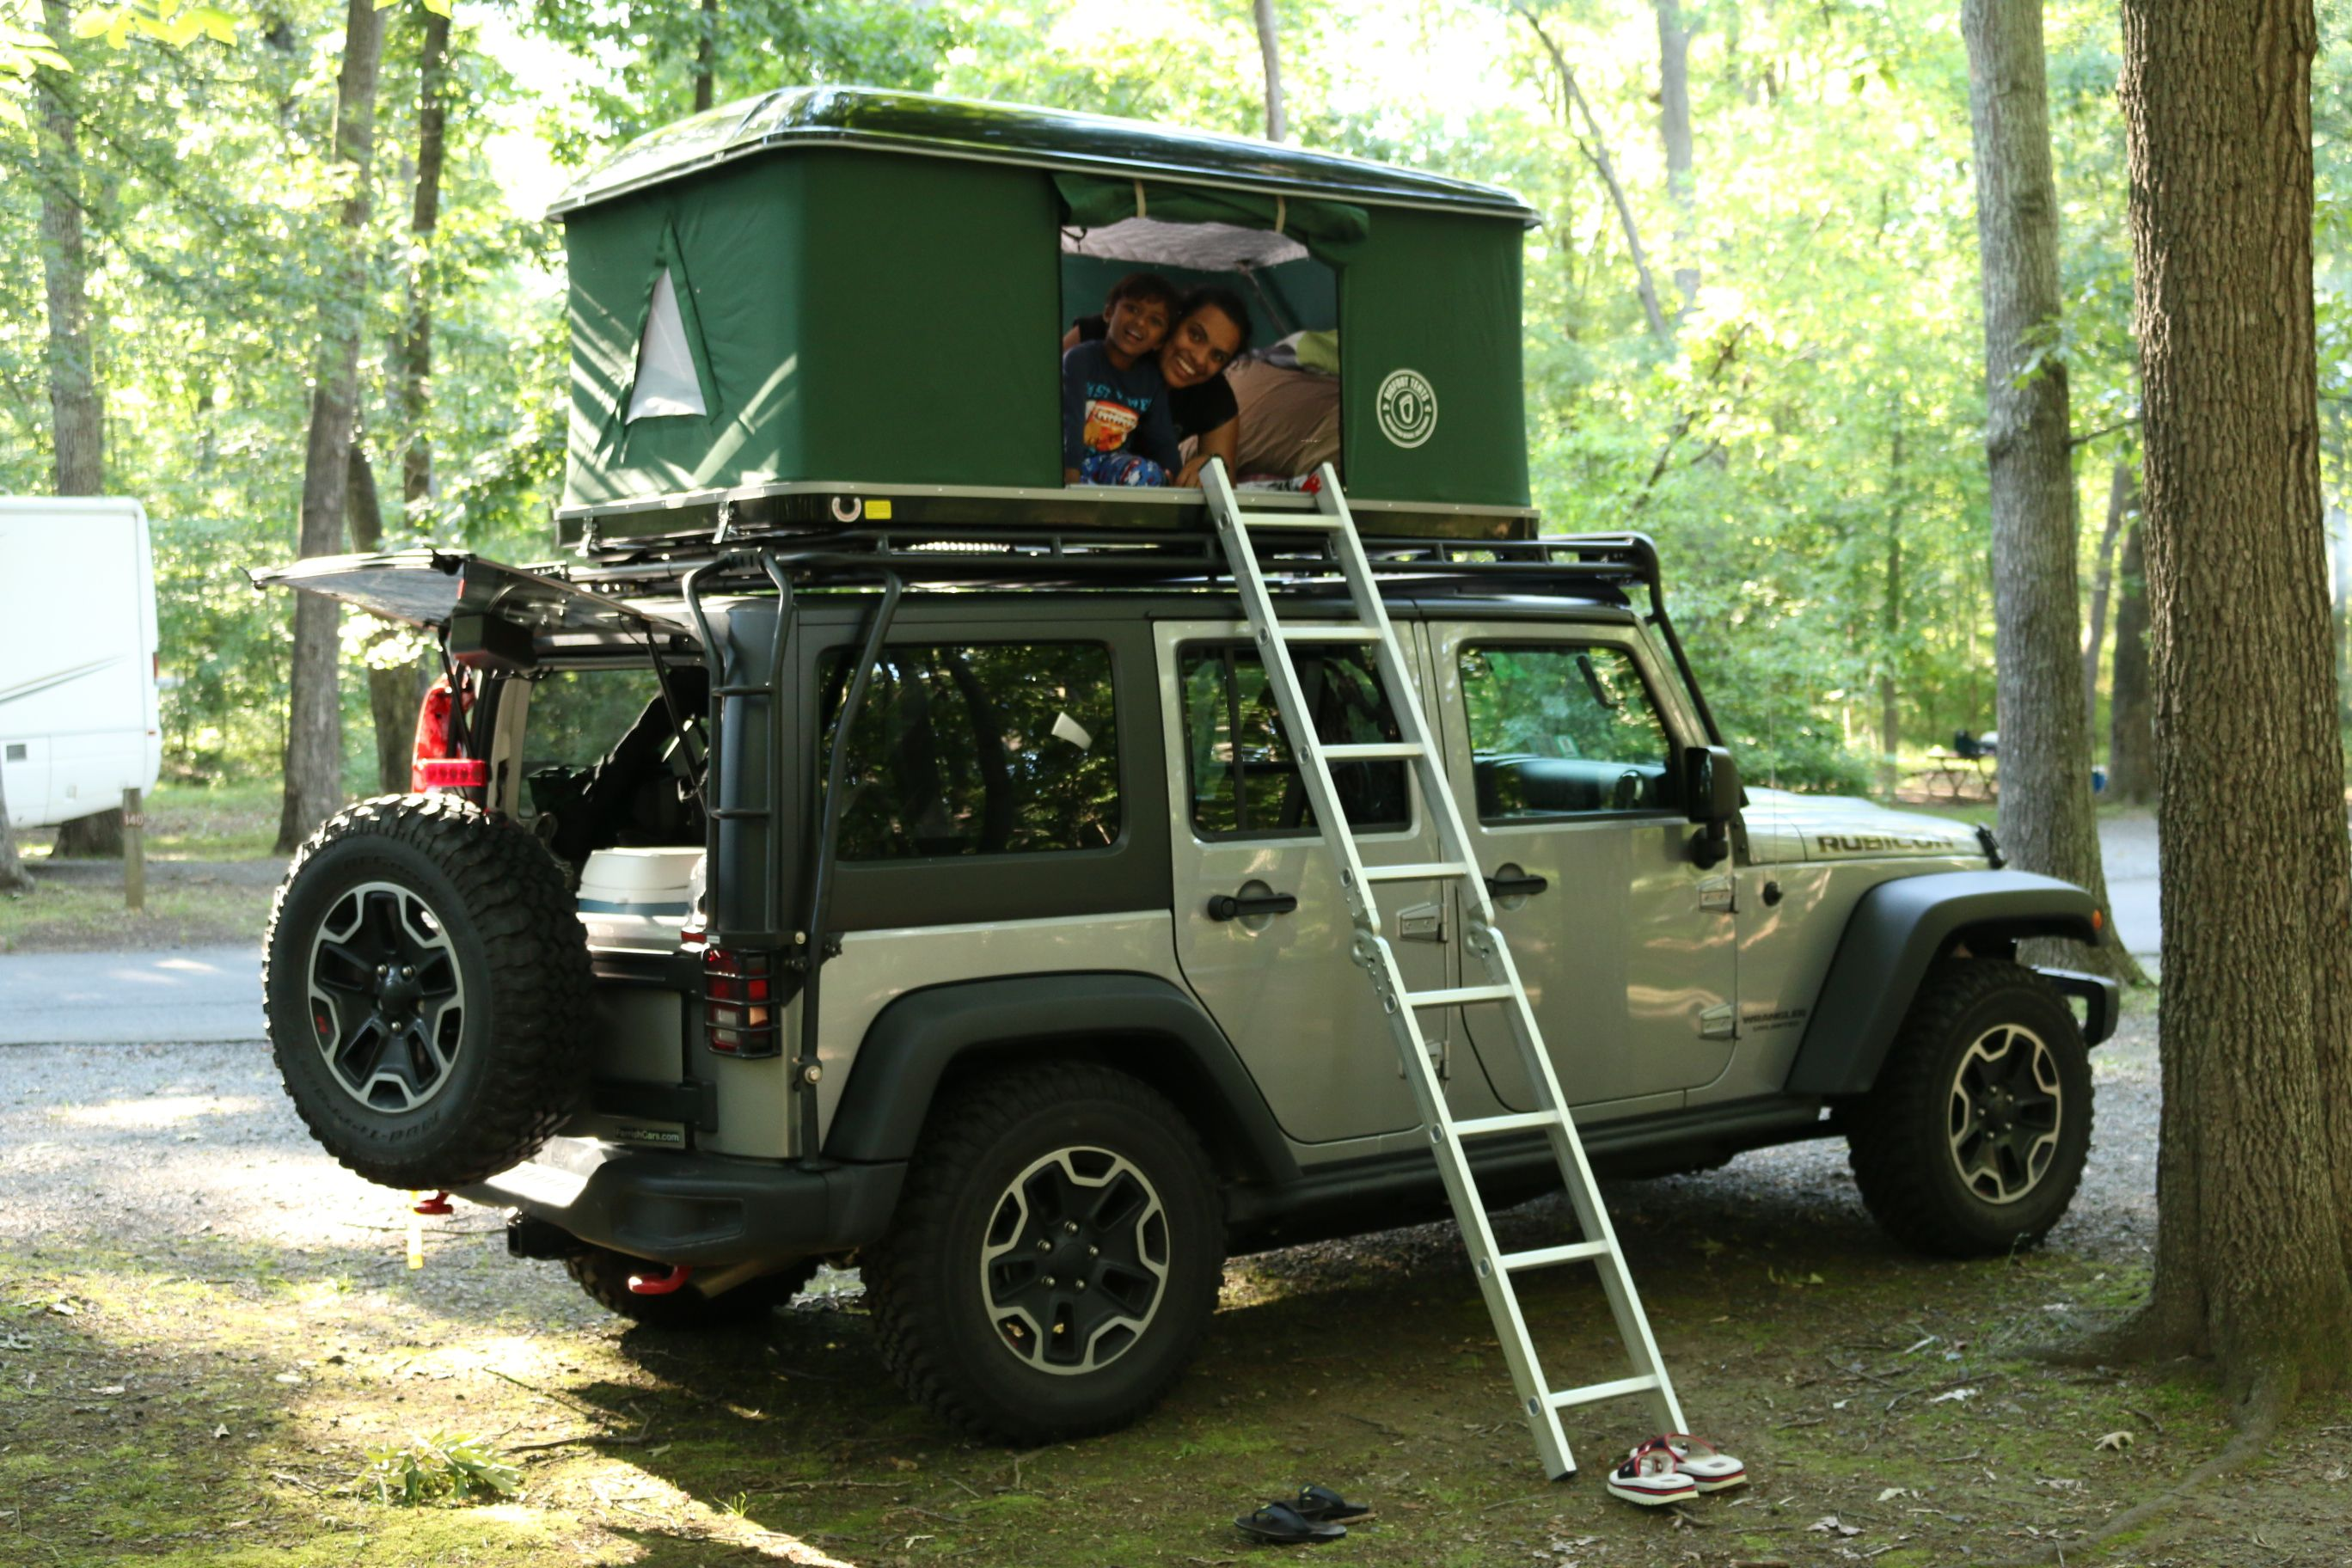 Roof Top Tent for a jeep family camping U S A